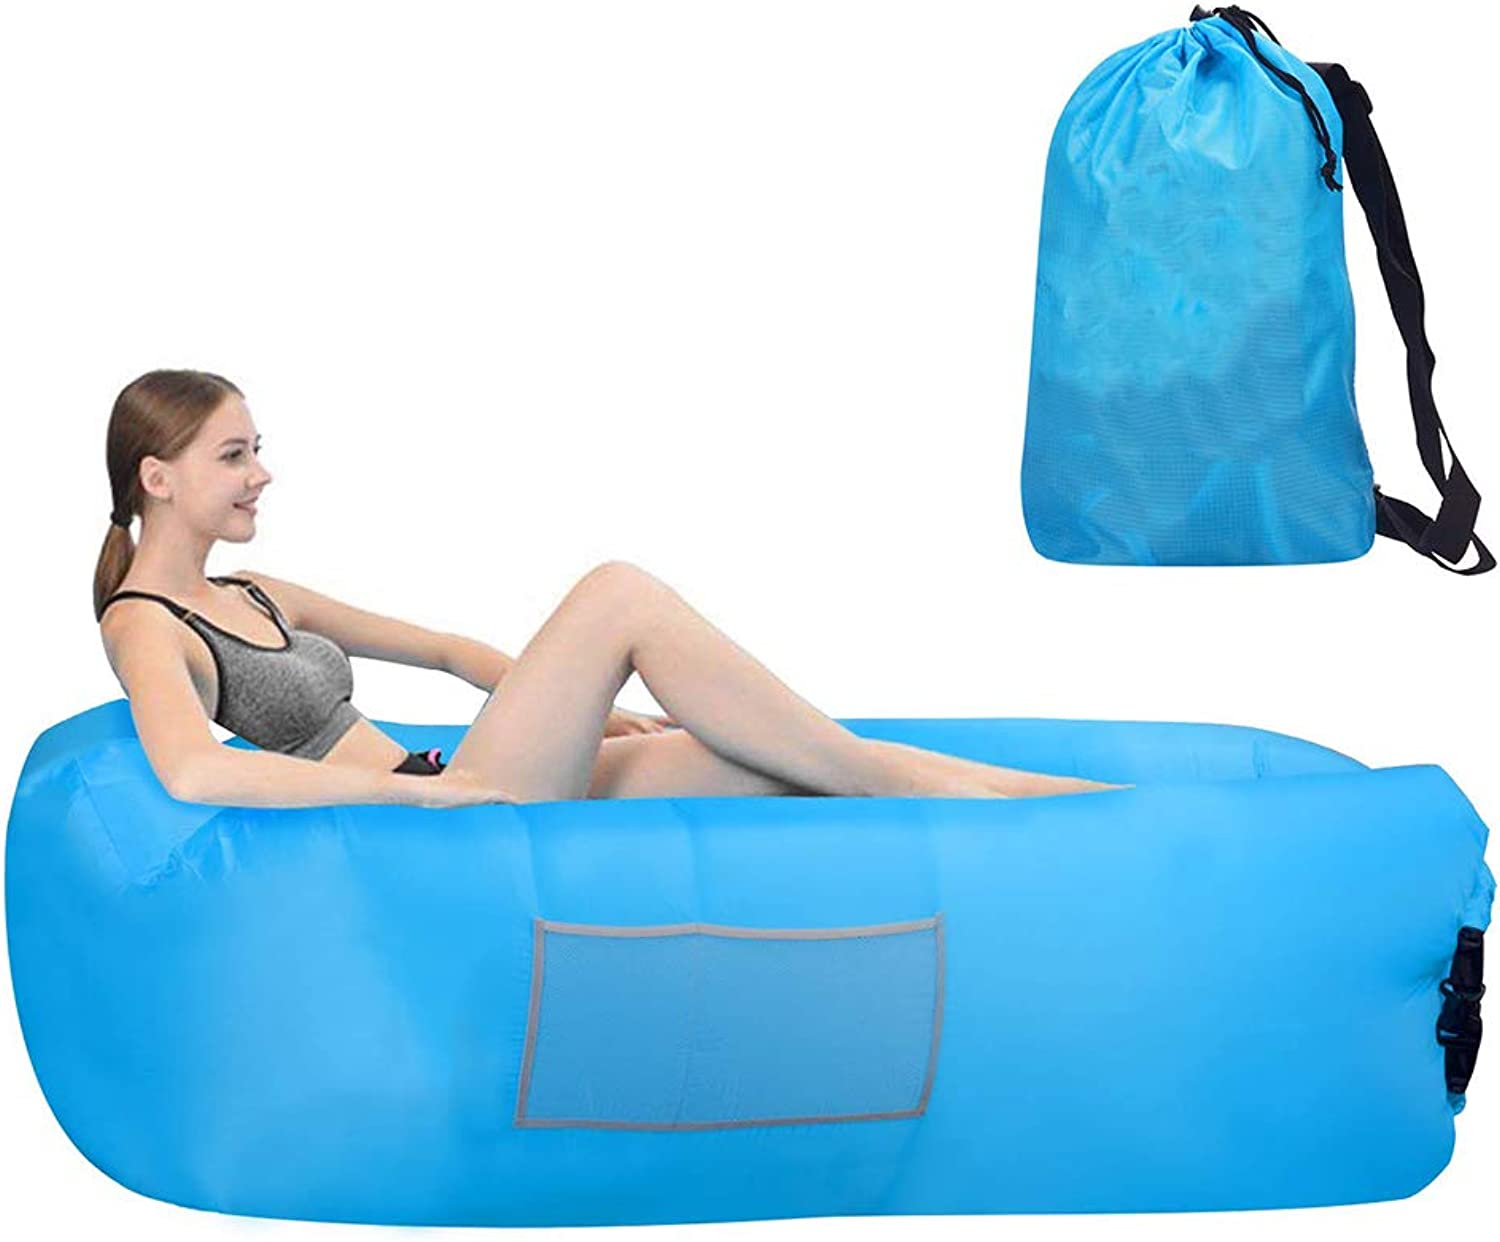 Outdoor Inflatable Sofa,Waterproof Lightweight and Easy to Clean Inflatable Sofa Suitable for Beach Camping Hiking and Swimming